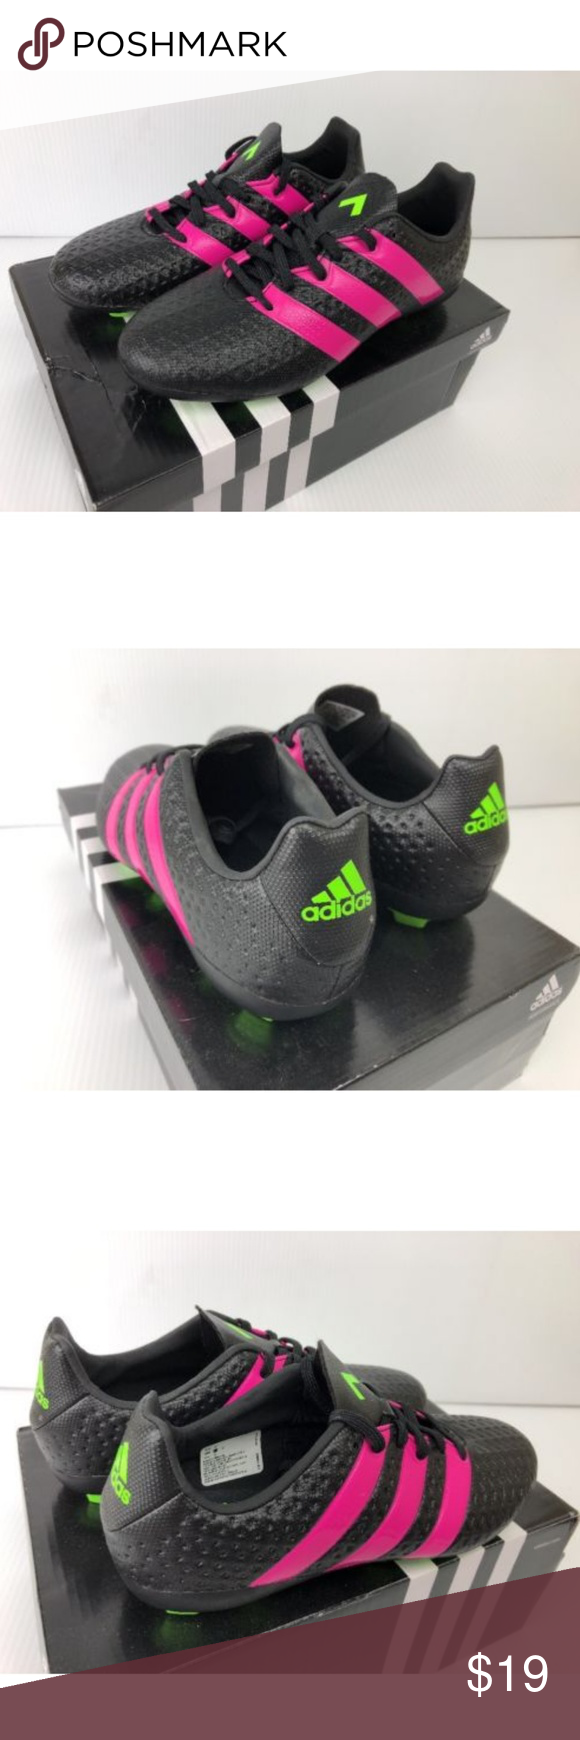 73151cf2c11 Adidas Ace 16.4 FxG J Soccer Cleats Adidas Boys AF5036 SGC 753002 Ace 16.4  FxG J Soccer Cleats Size 3.5 Brand new in box! adidas Shoes